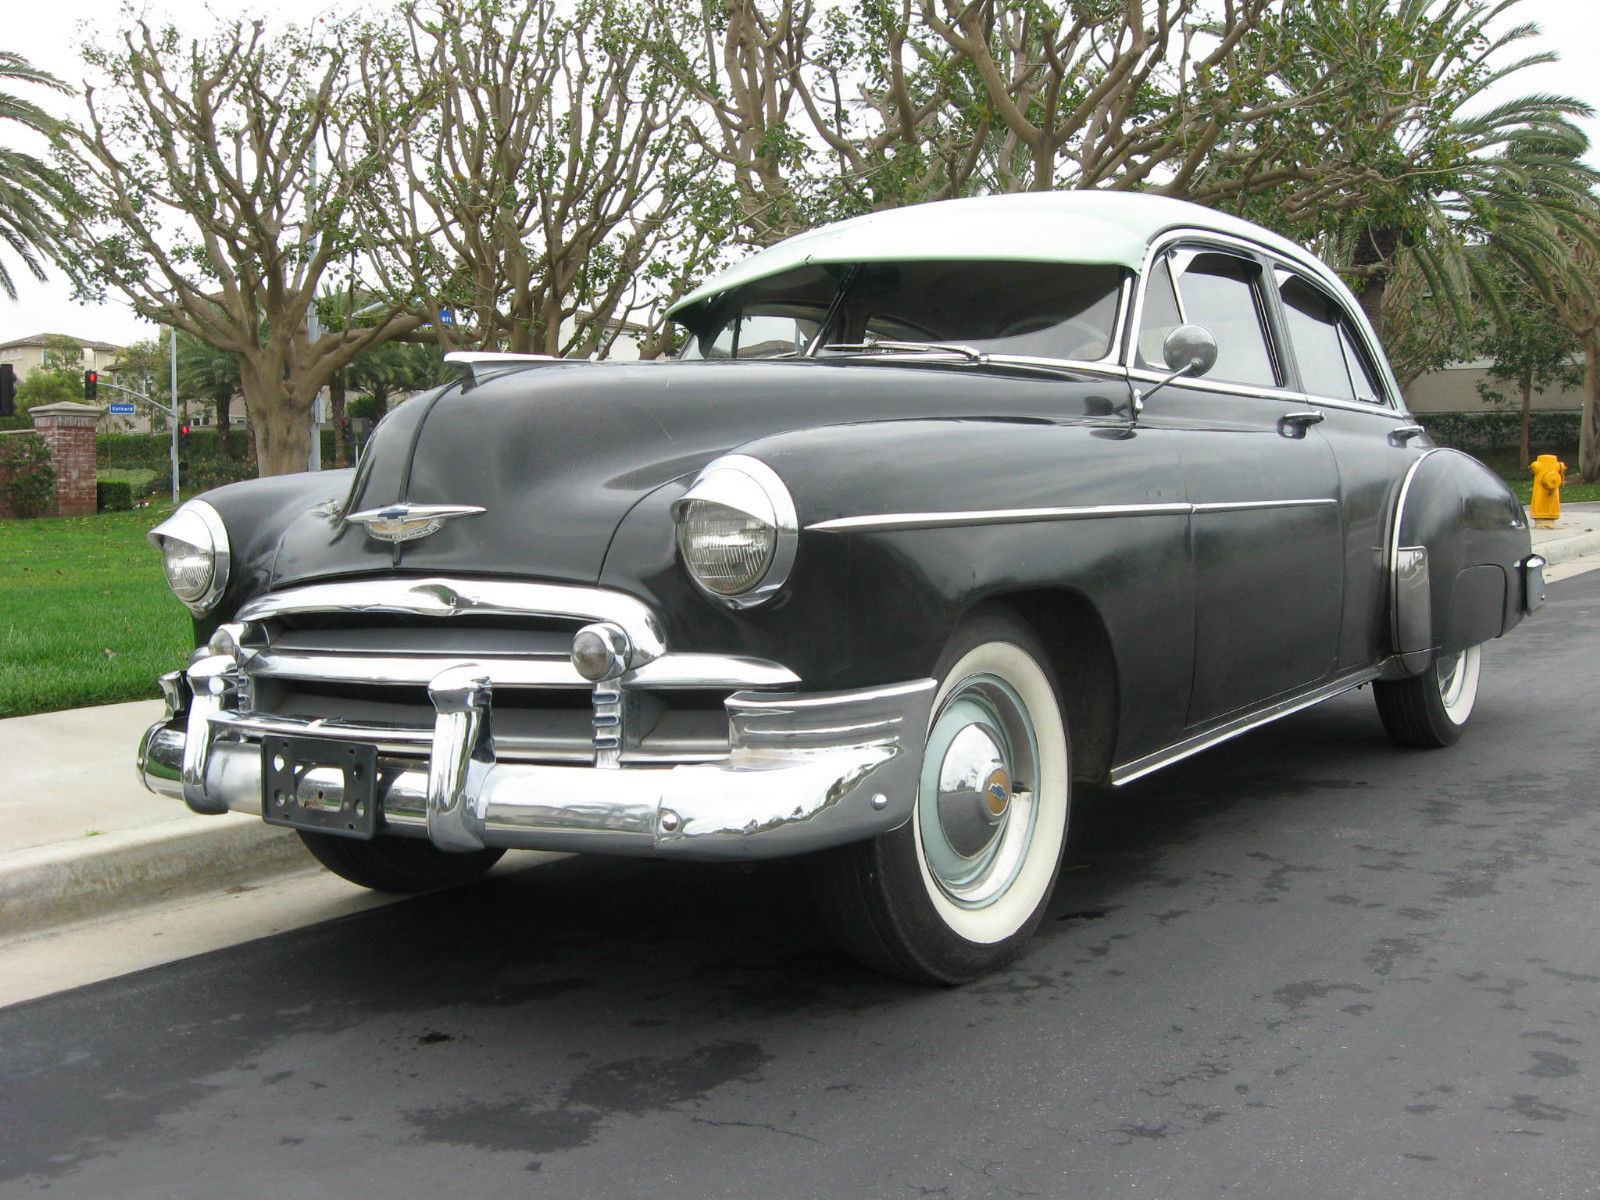 1950 Chevy Styleline Deluxe All Stock And Original